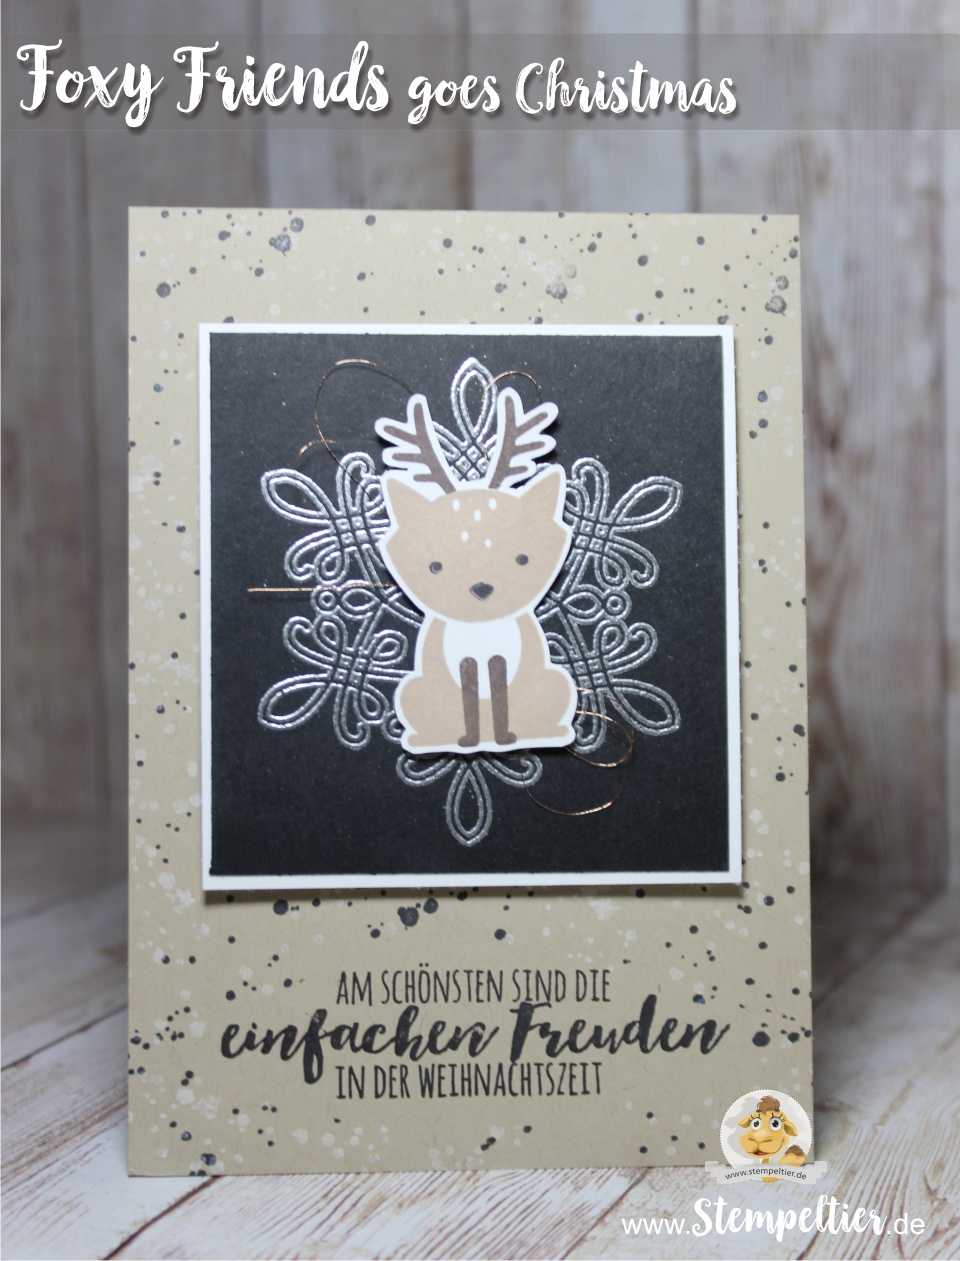 foxy friends christmas card snowflake stempeltier blog stampin up reindeer Rentier flurry of wishes silver